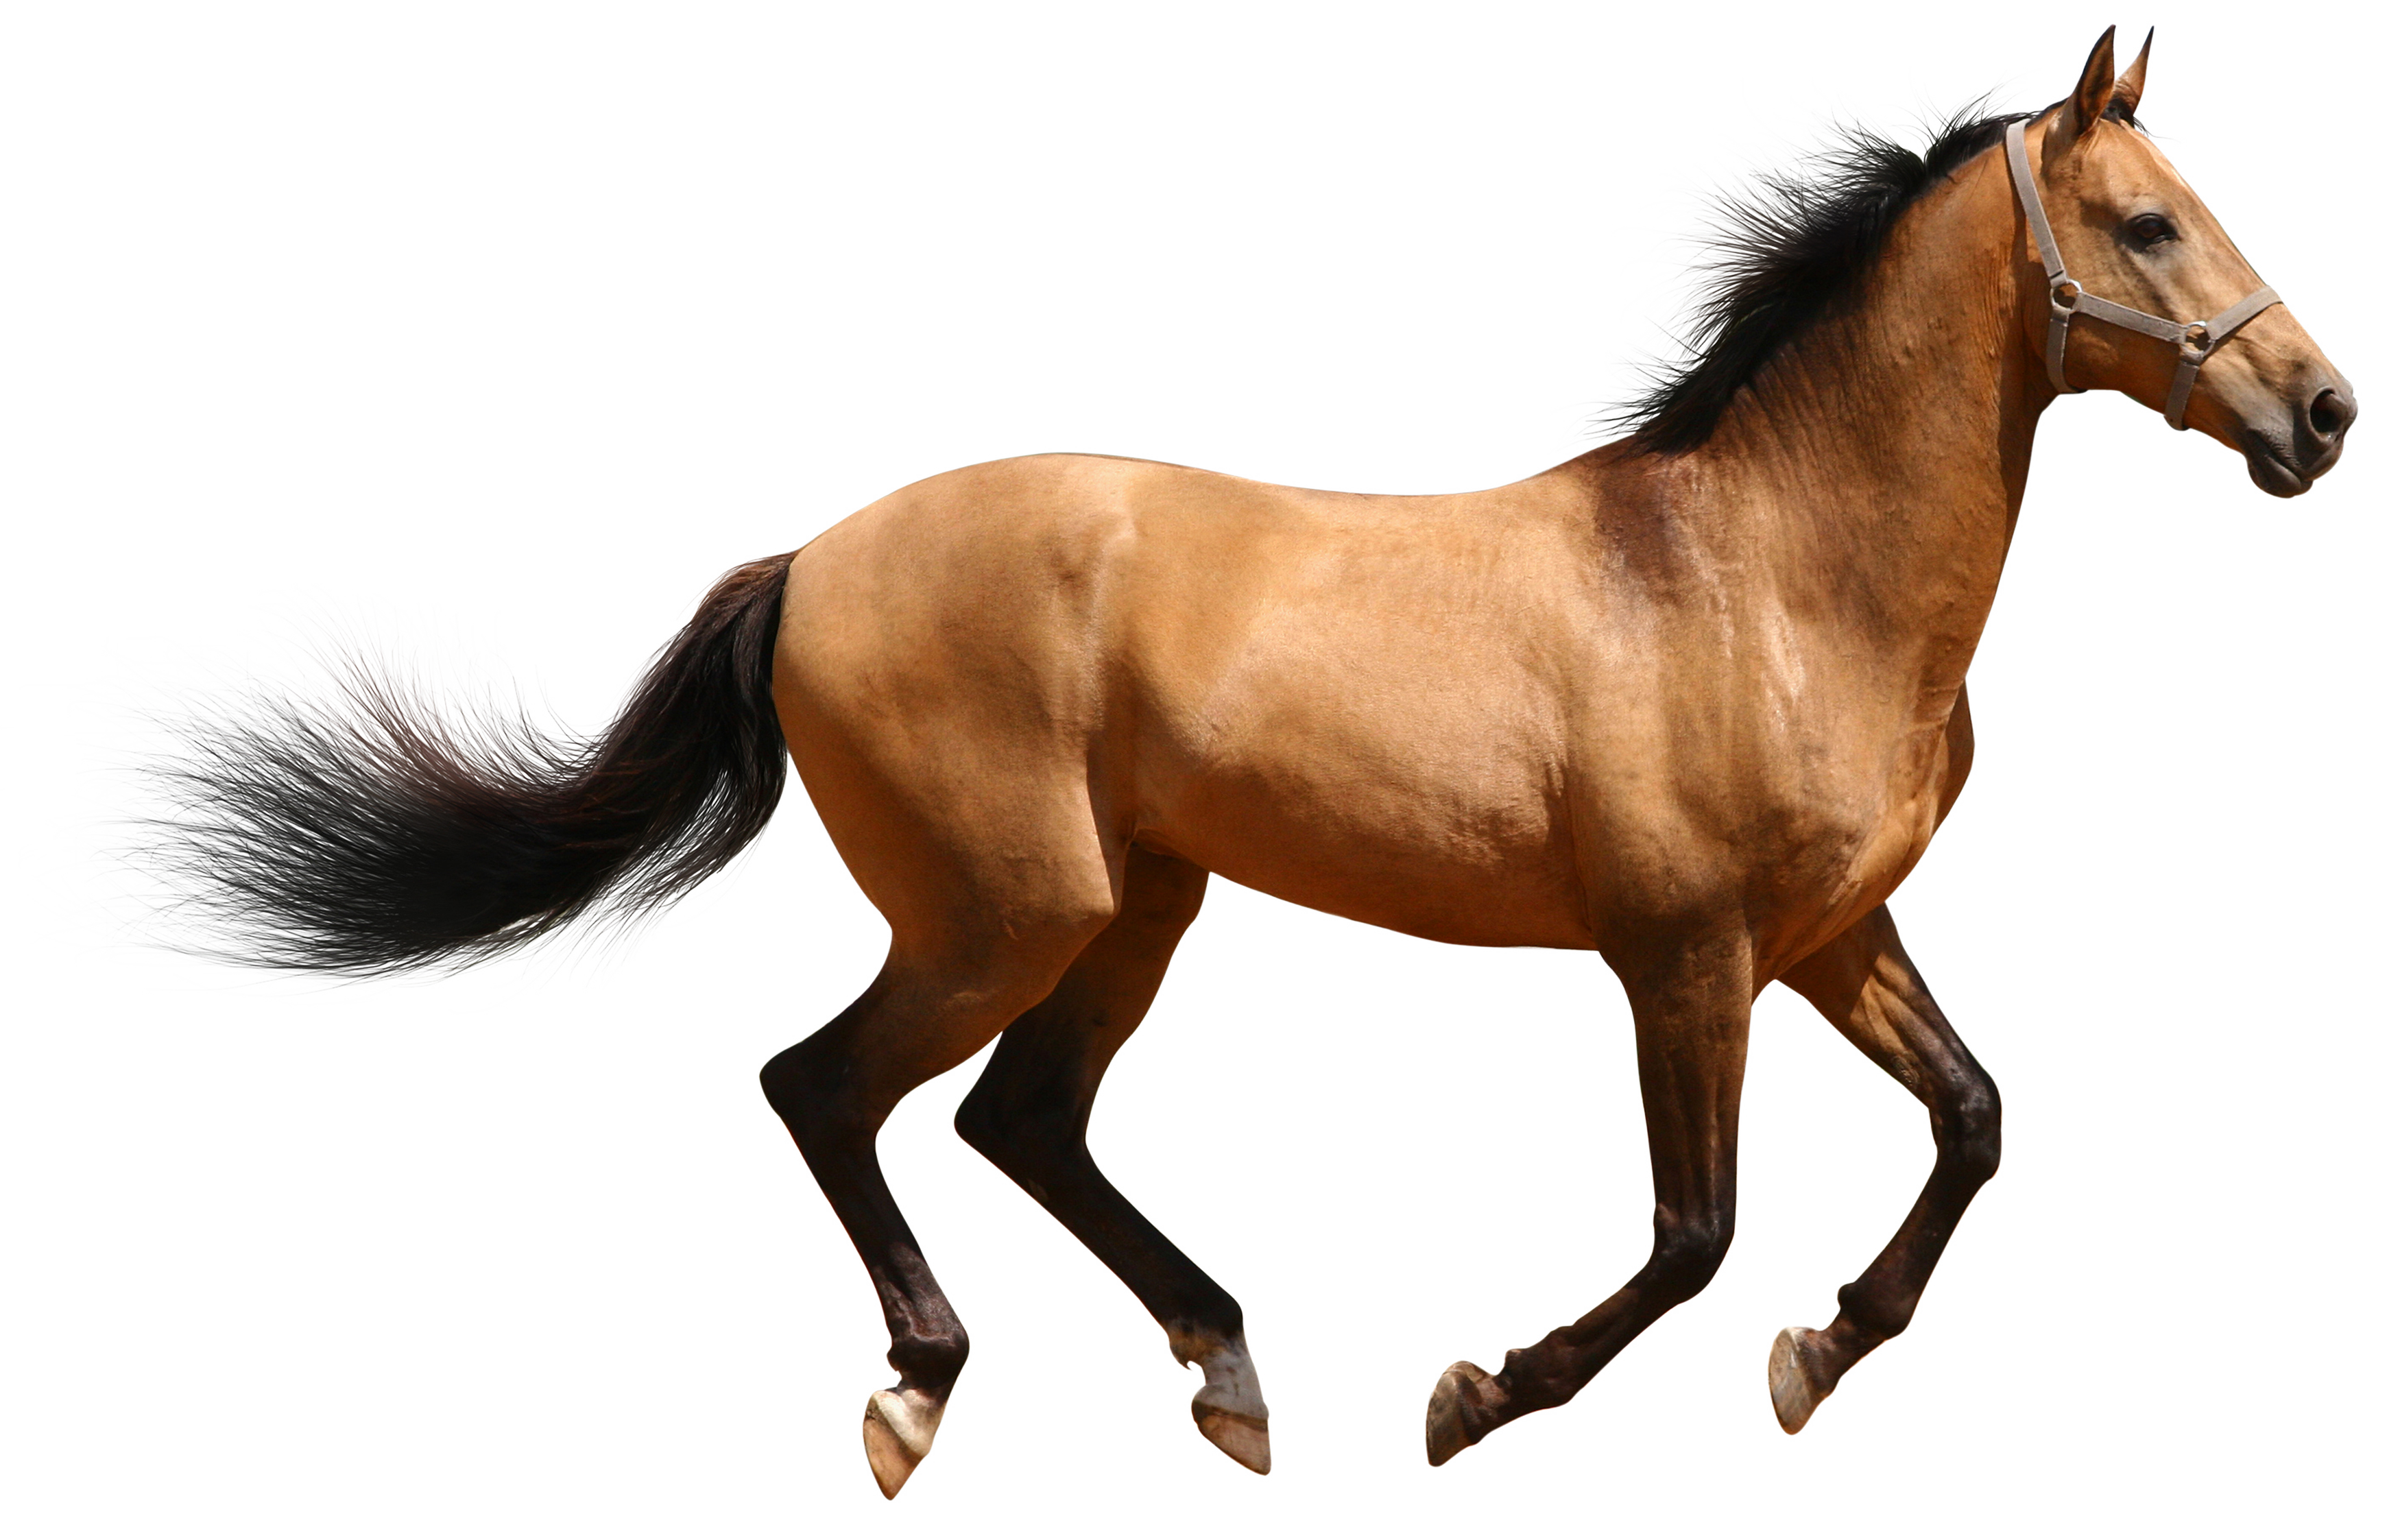 Horse Png Image #22544 - Horse PNG - Horse HD PNG